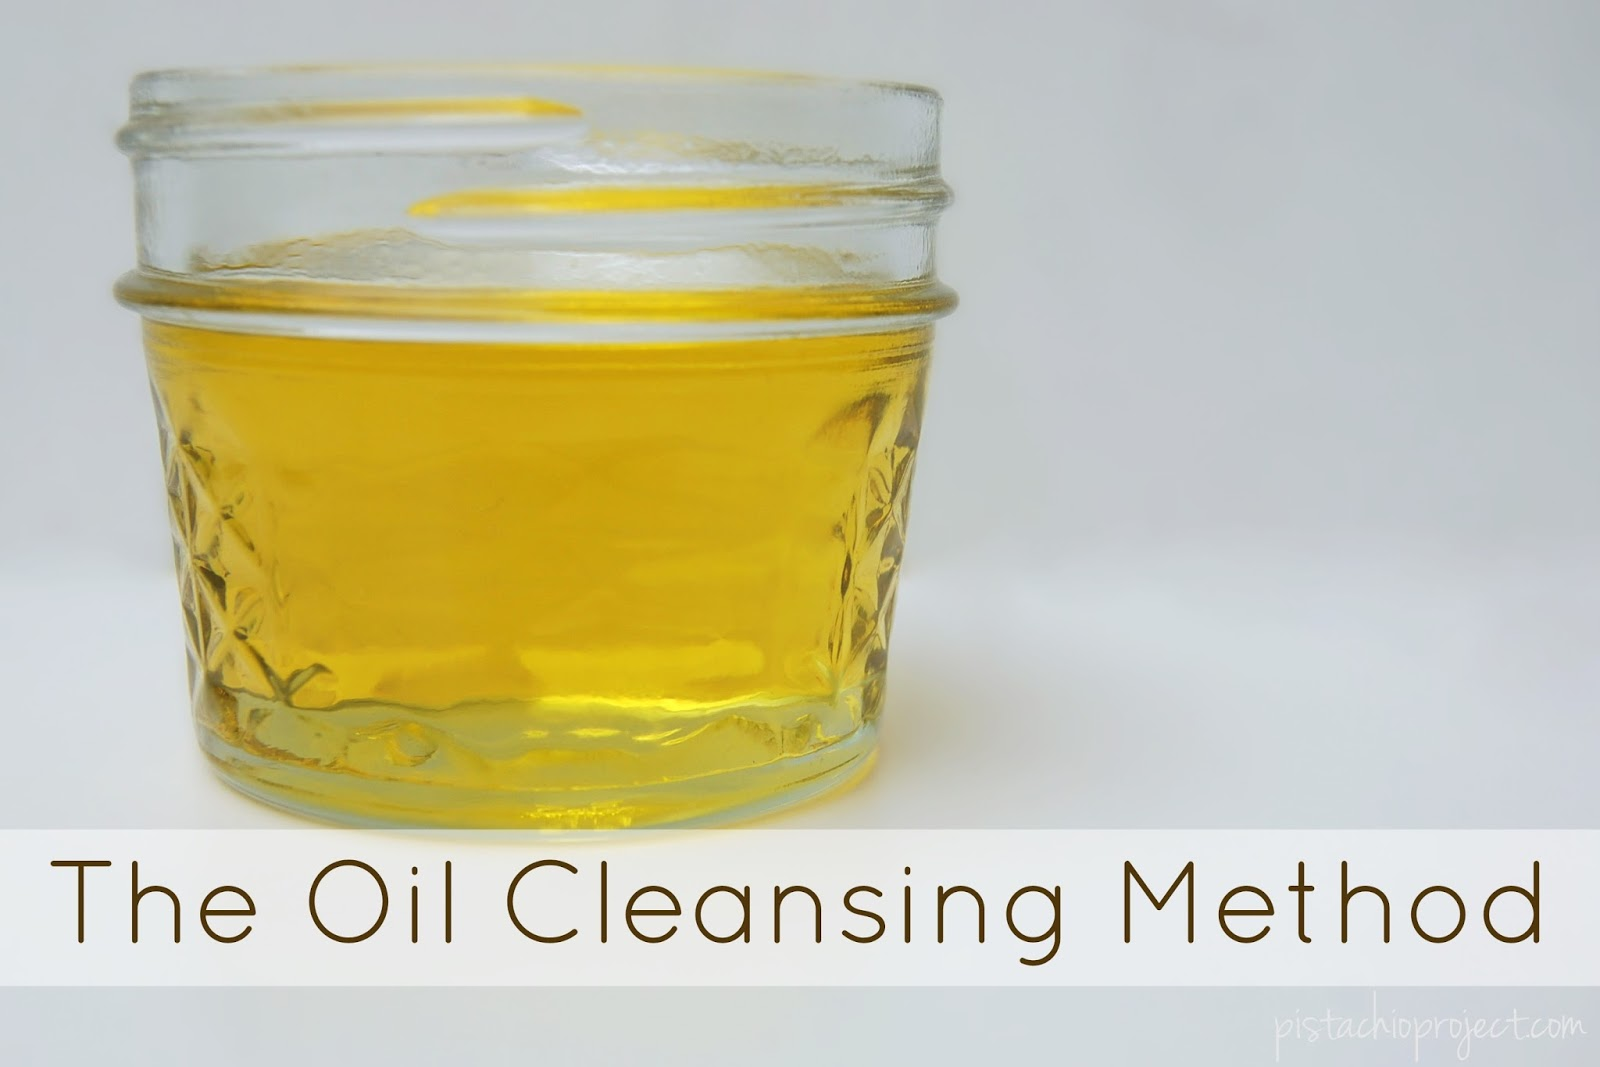 The Oil Cleansing Method - How to Clean Your Face With Oil